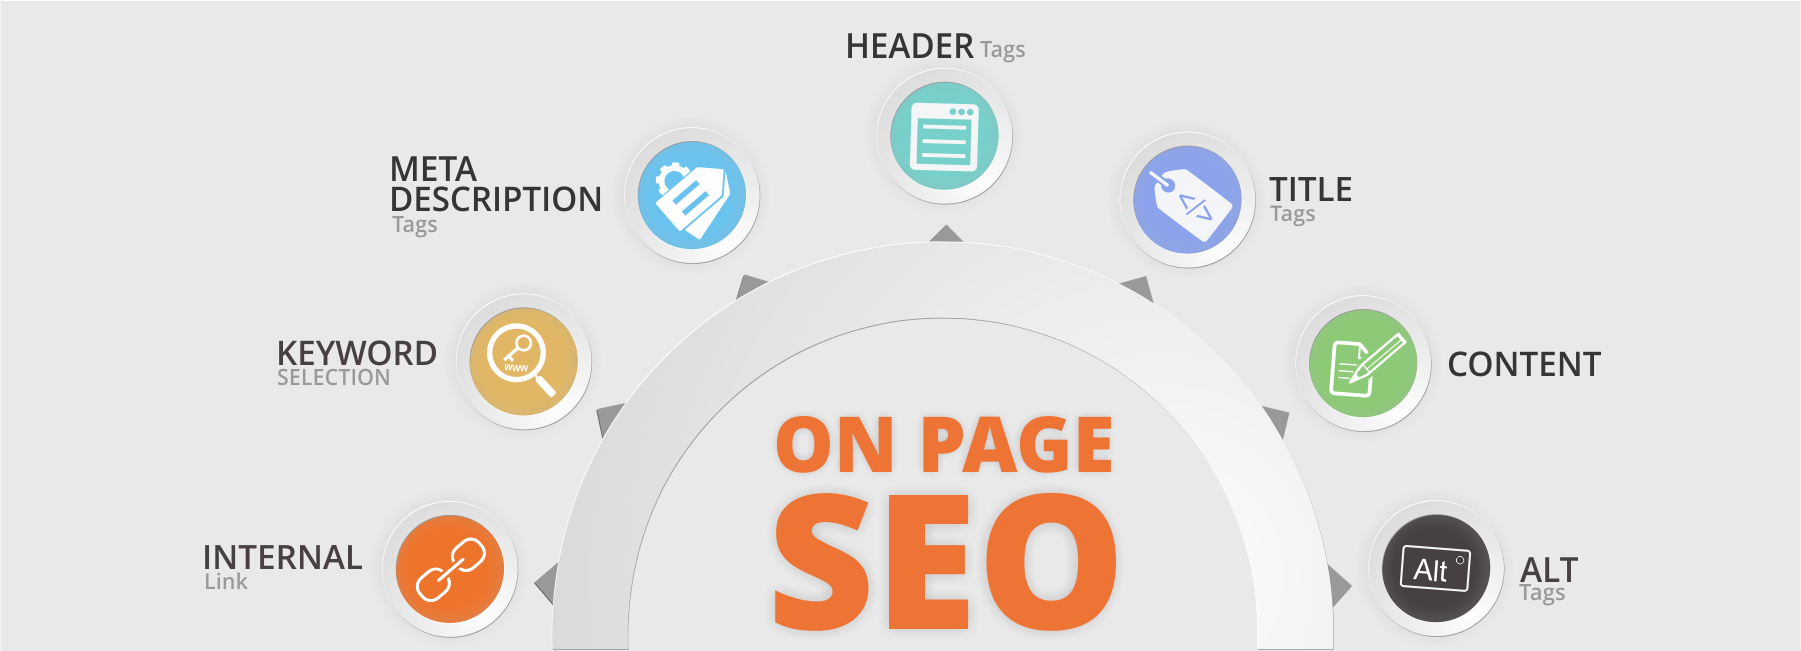 Advance On Page SEO Optimization for Google First Page Ranking